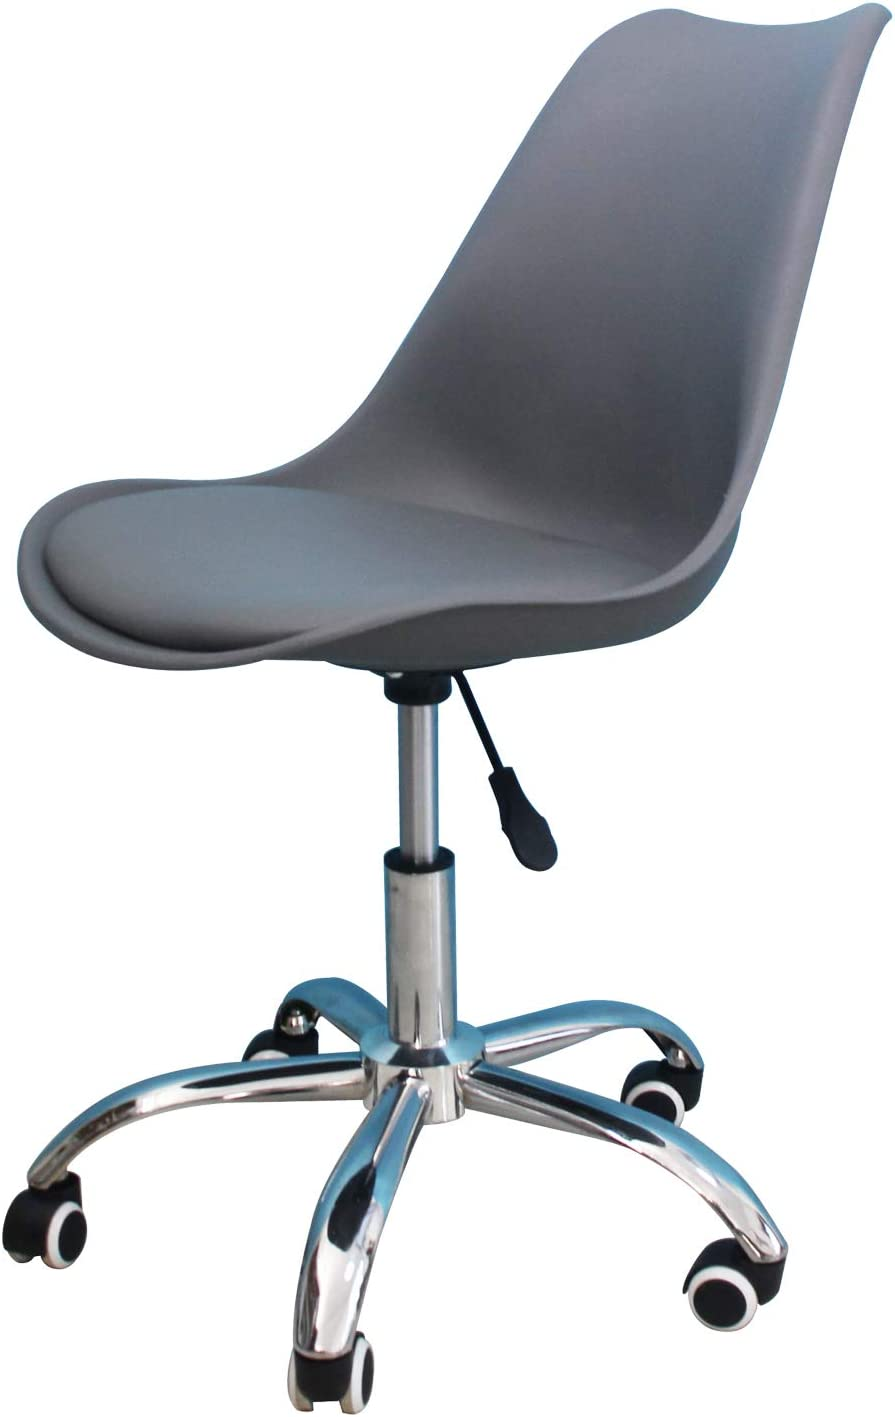 Office Chair Student Desk Liftable Standing Table Writing Desk Swivel Chair  Bedside Table Sturdy Modern Stylish Home Office Bedroom Chair Updated